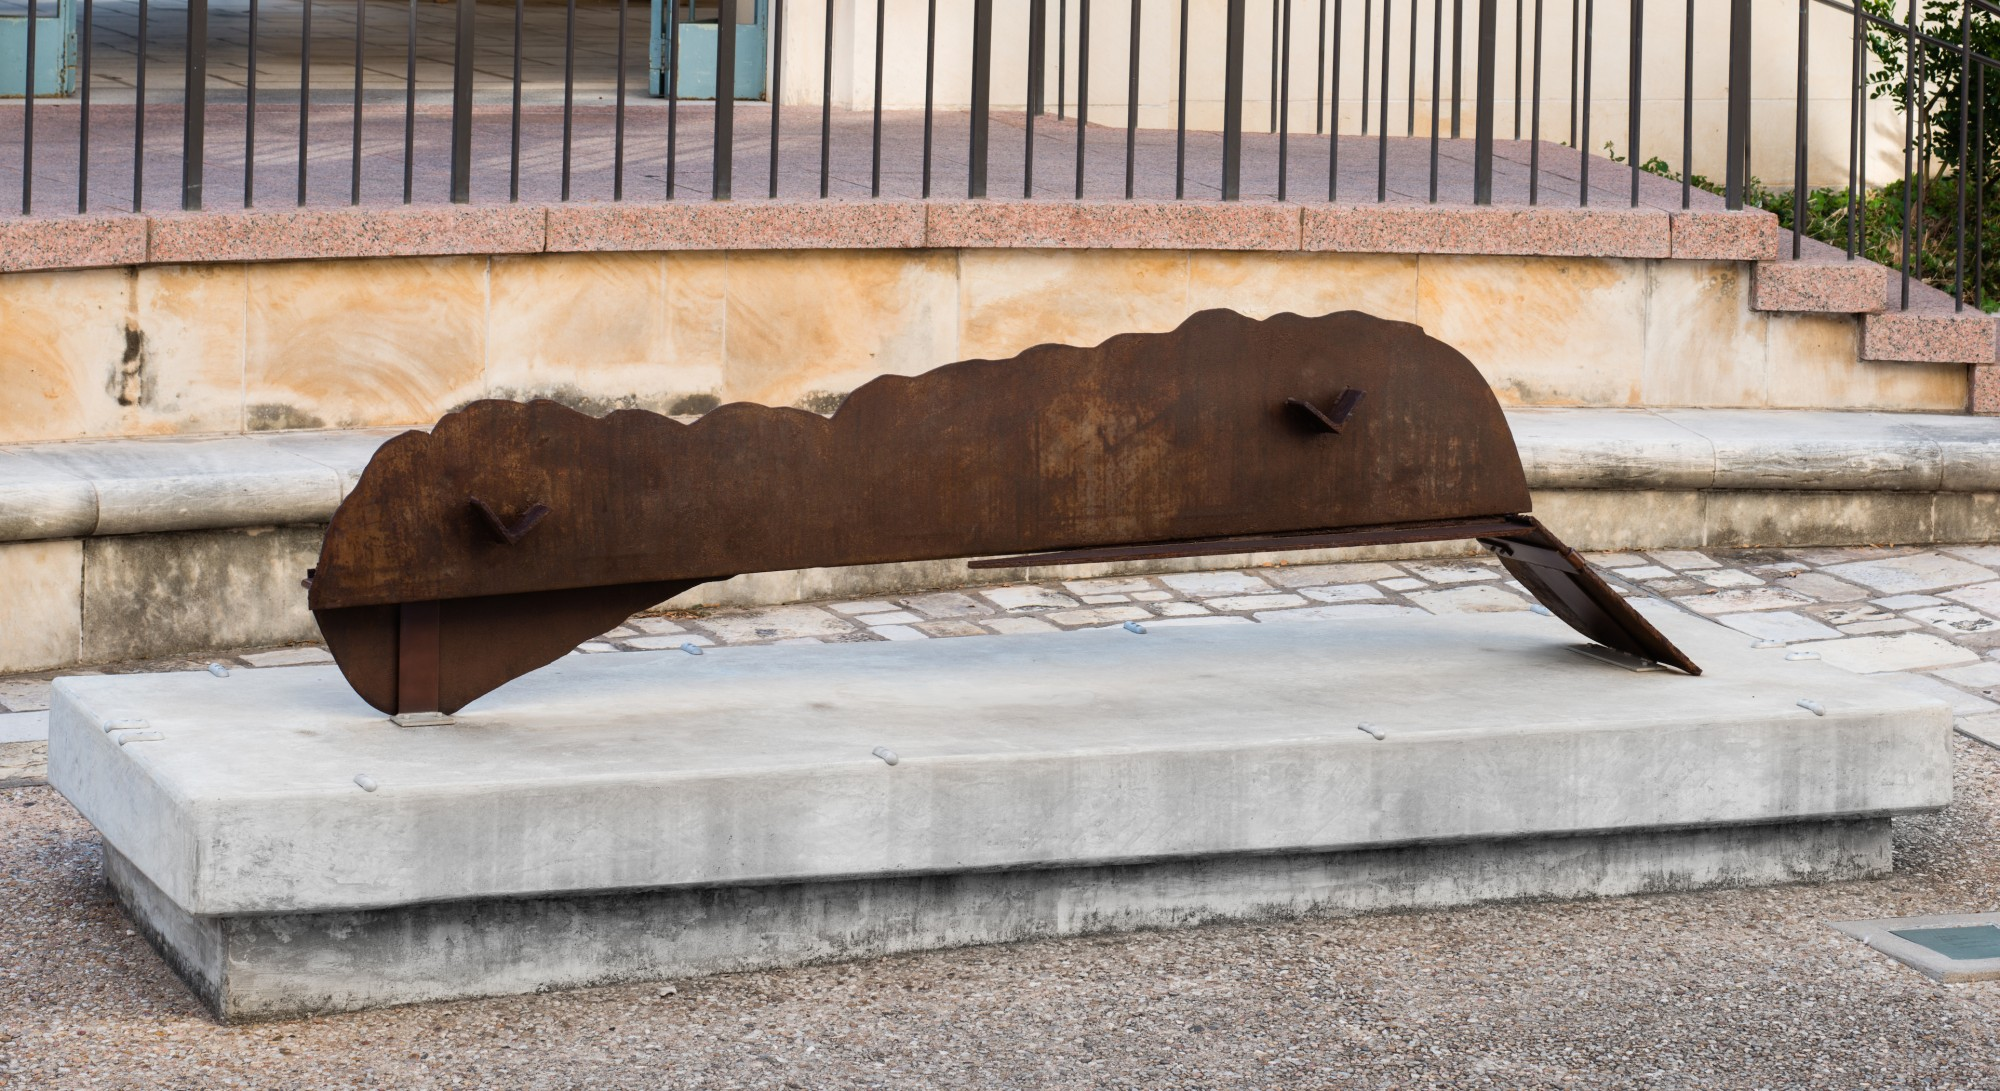 A brown sculpture on a concrete base